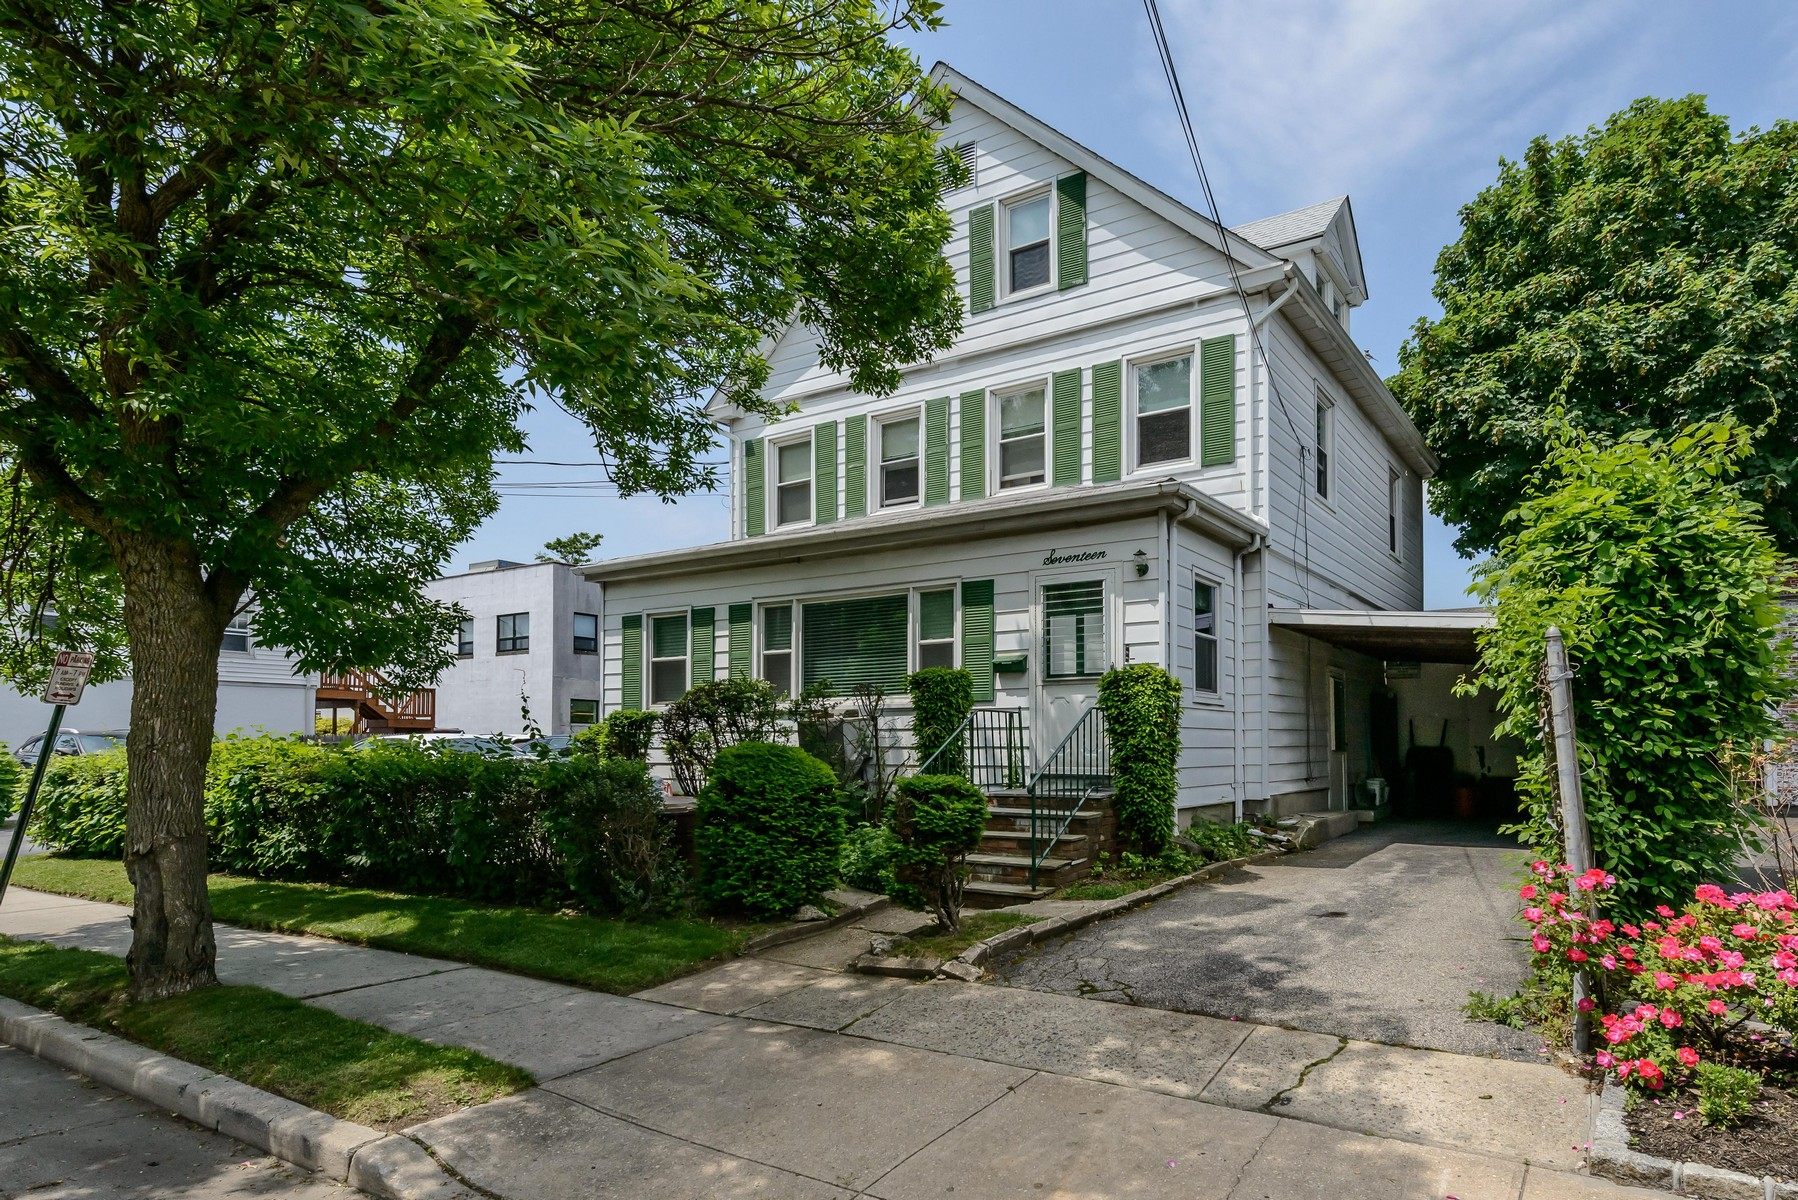 Multi-Family Home for Sale at Other 17 Myrtle St Manhasset, New York, 11030 United States